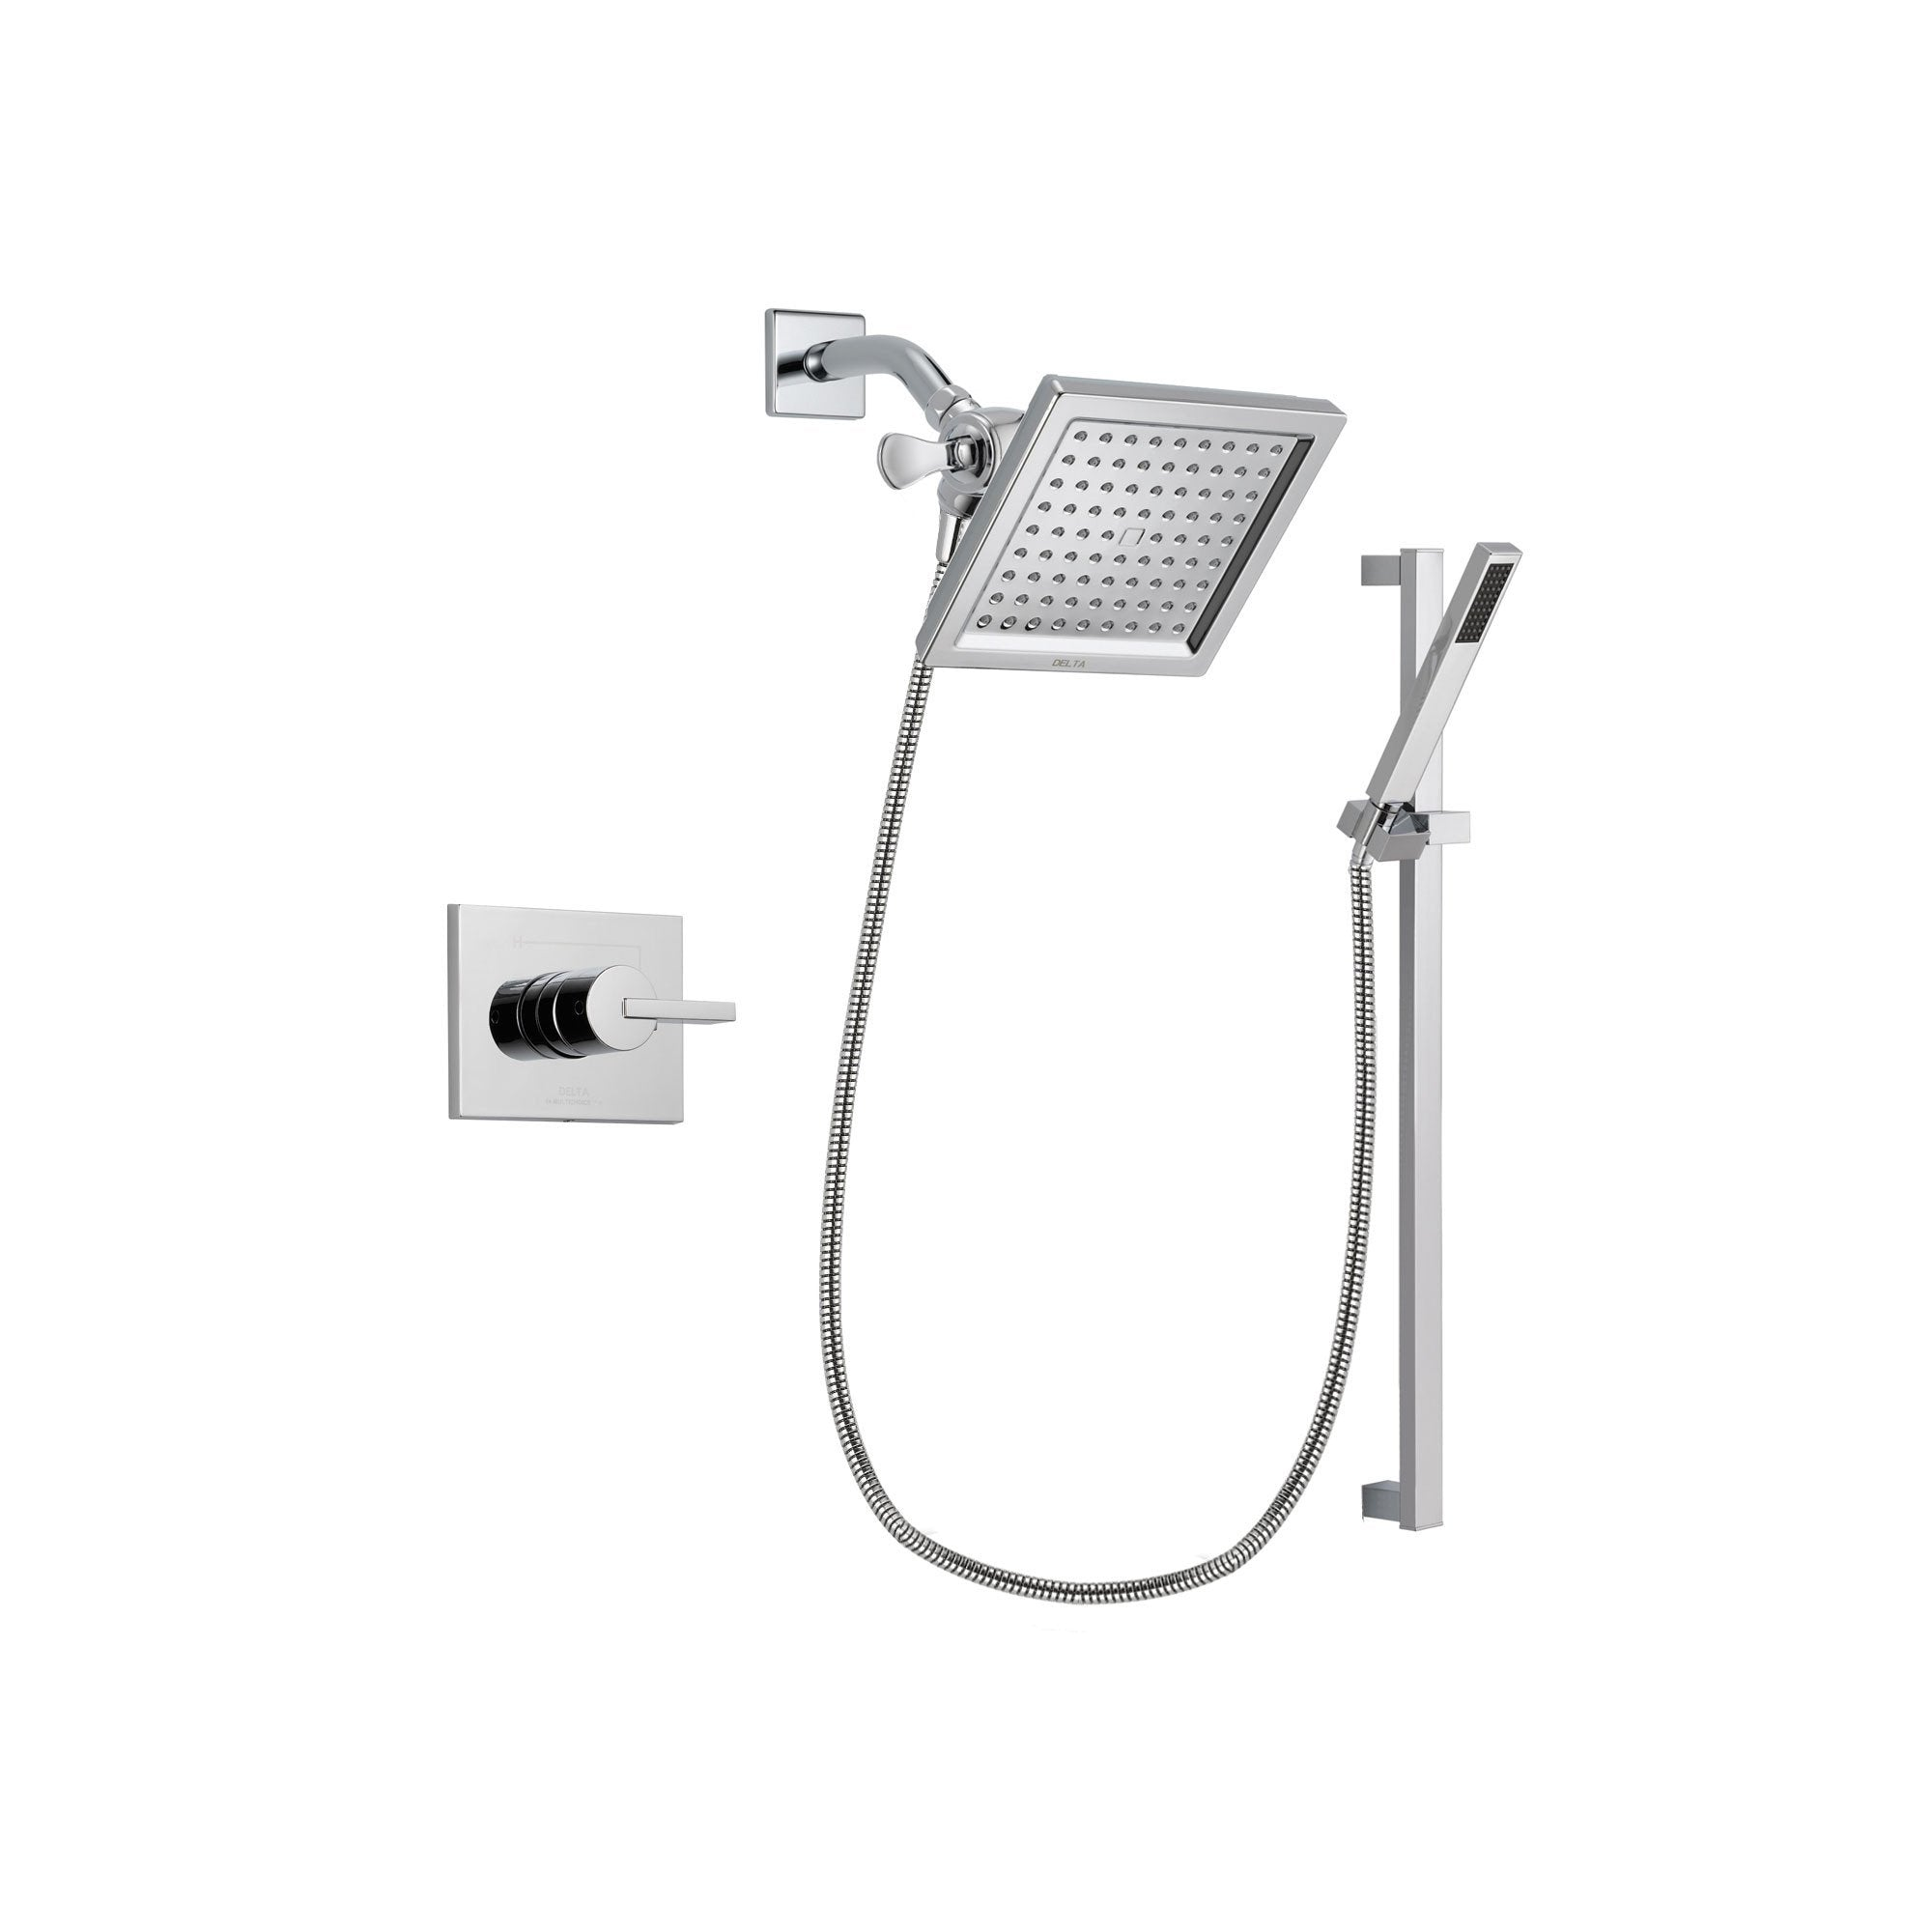 Delta Vero Chrome Shower Faucet System with Shower Head and Hand Shower DSP0217V